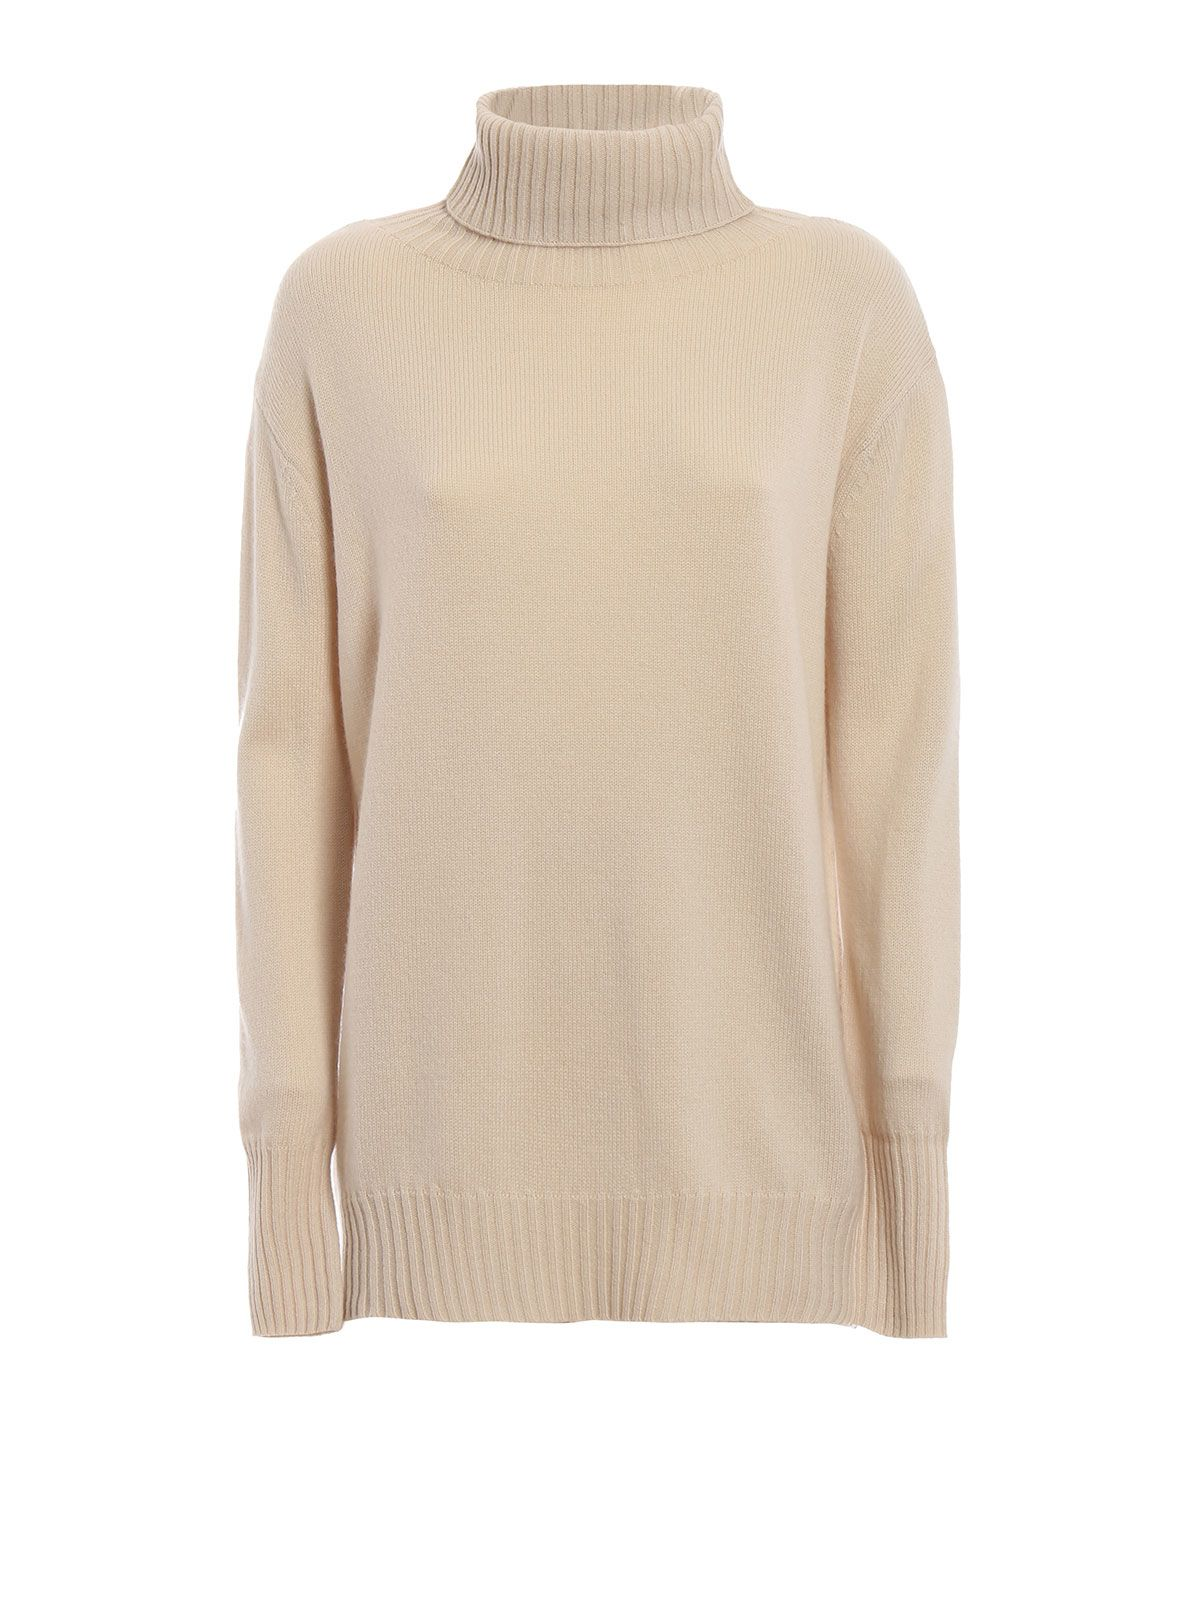 max mara -  Dialogo Wool And Cashmere Over Turtleneck